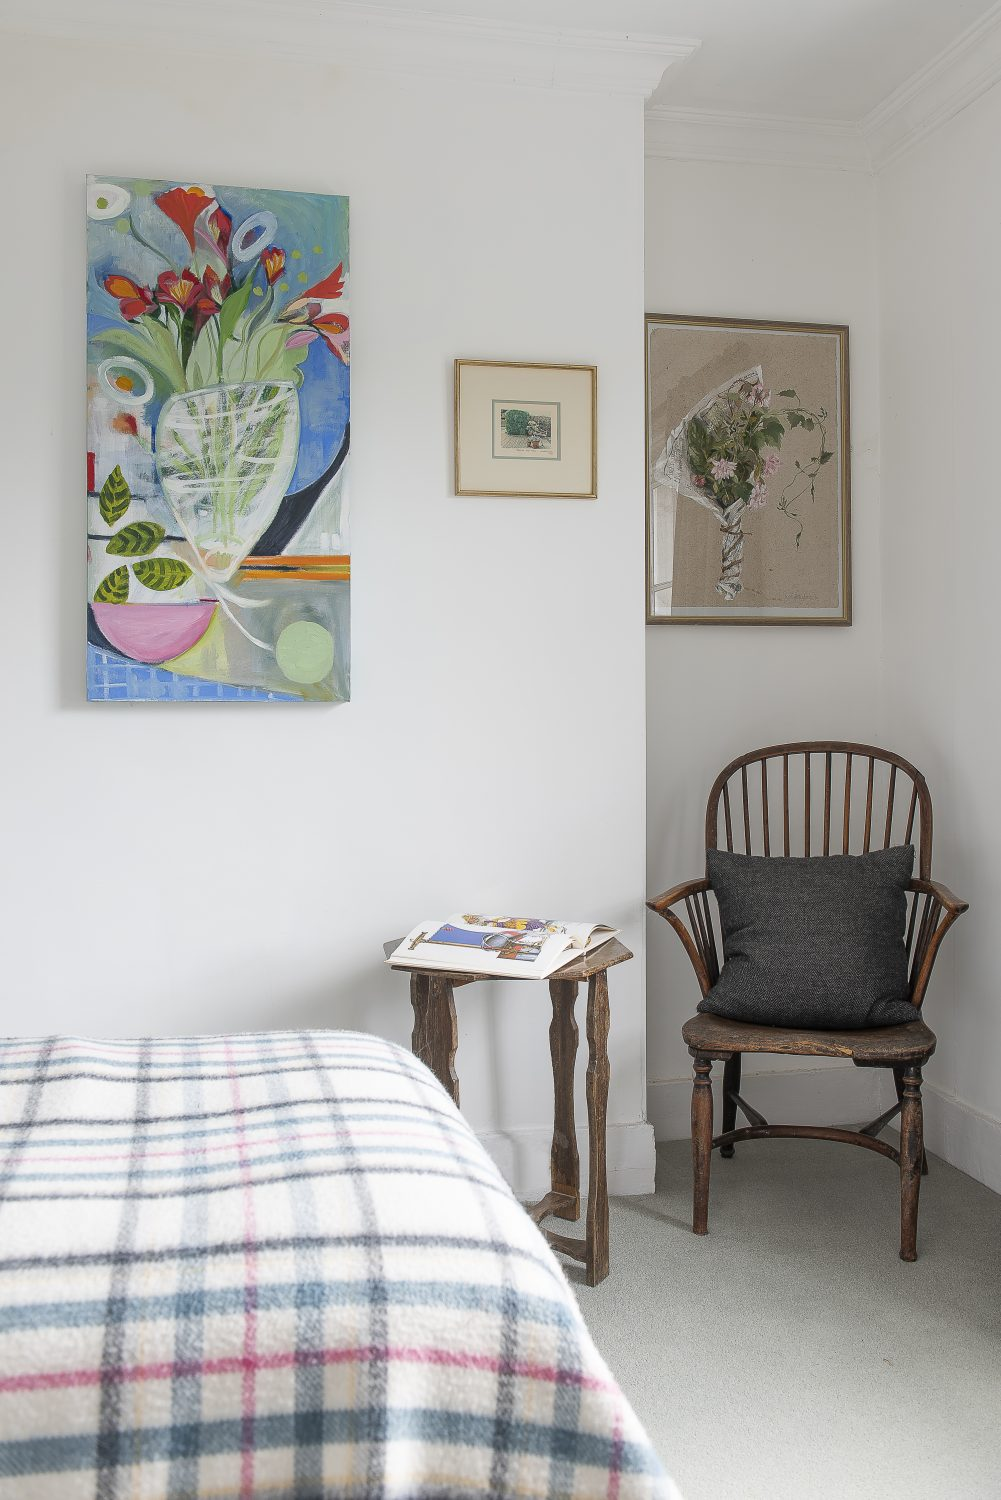 In contrast to the cool white walls in a small guest bedroom, colourful floral abstract paintings provide a splash of primary colour